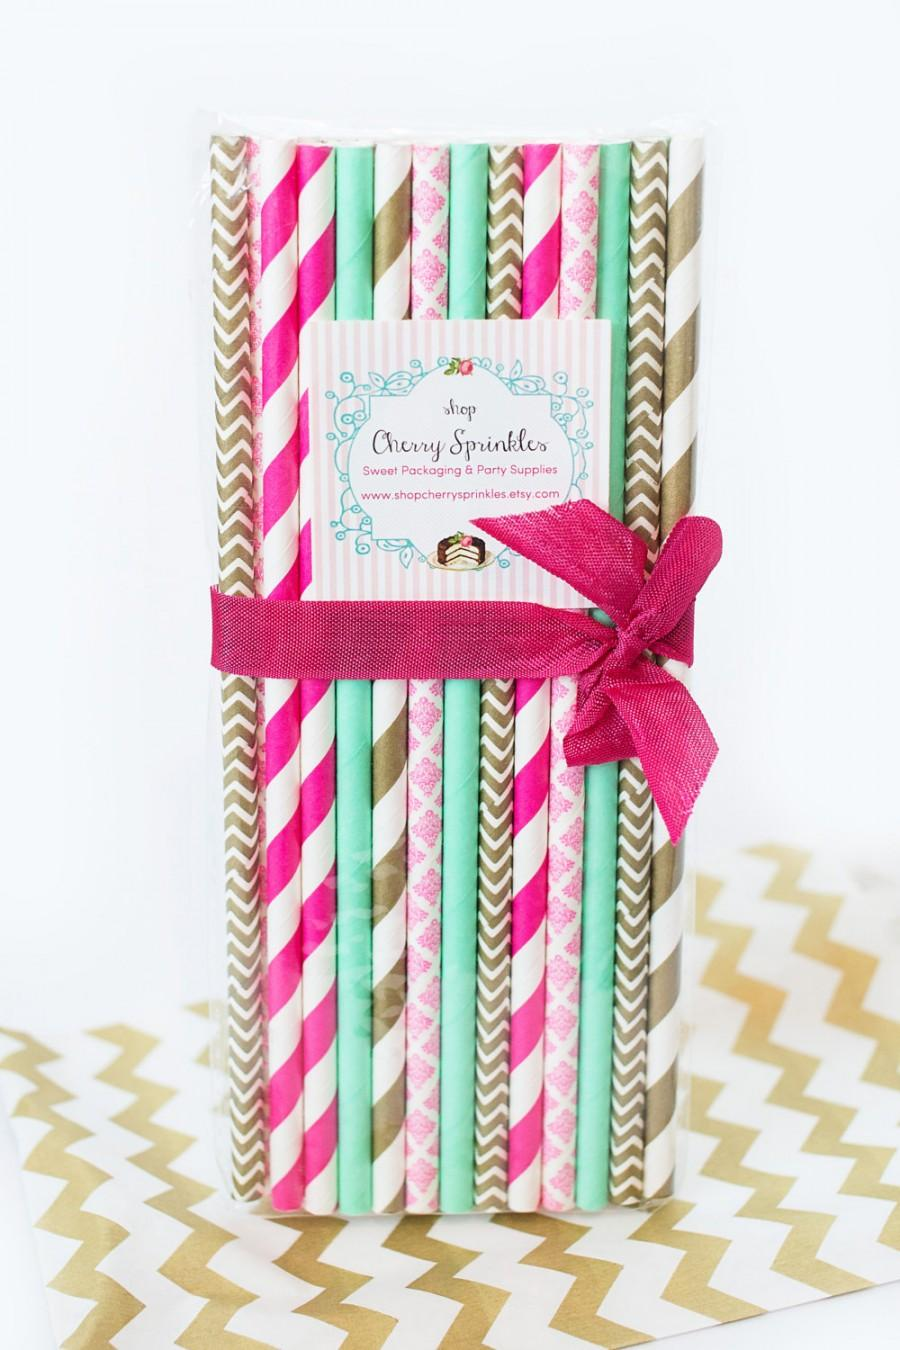 Mariage - HOT PINK paper straws *Pink and Mint *Mint Straws *GOLD Straws -Wedding, Birthday, Baby Shower *Dark Pink and Mint *Vintage inspired straws